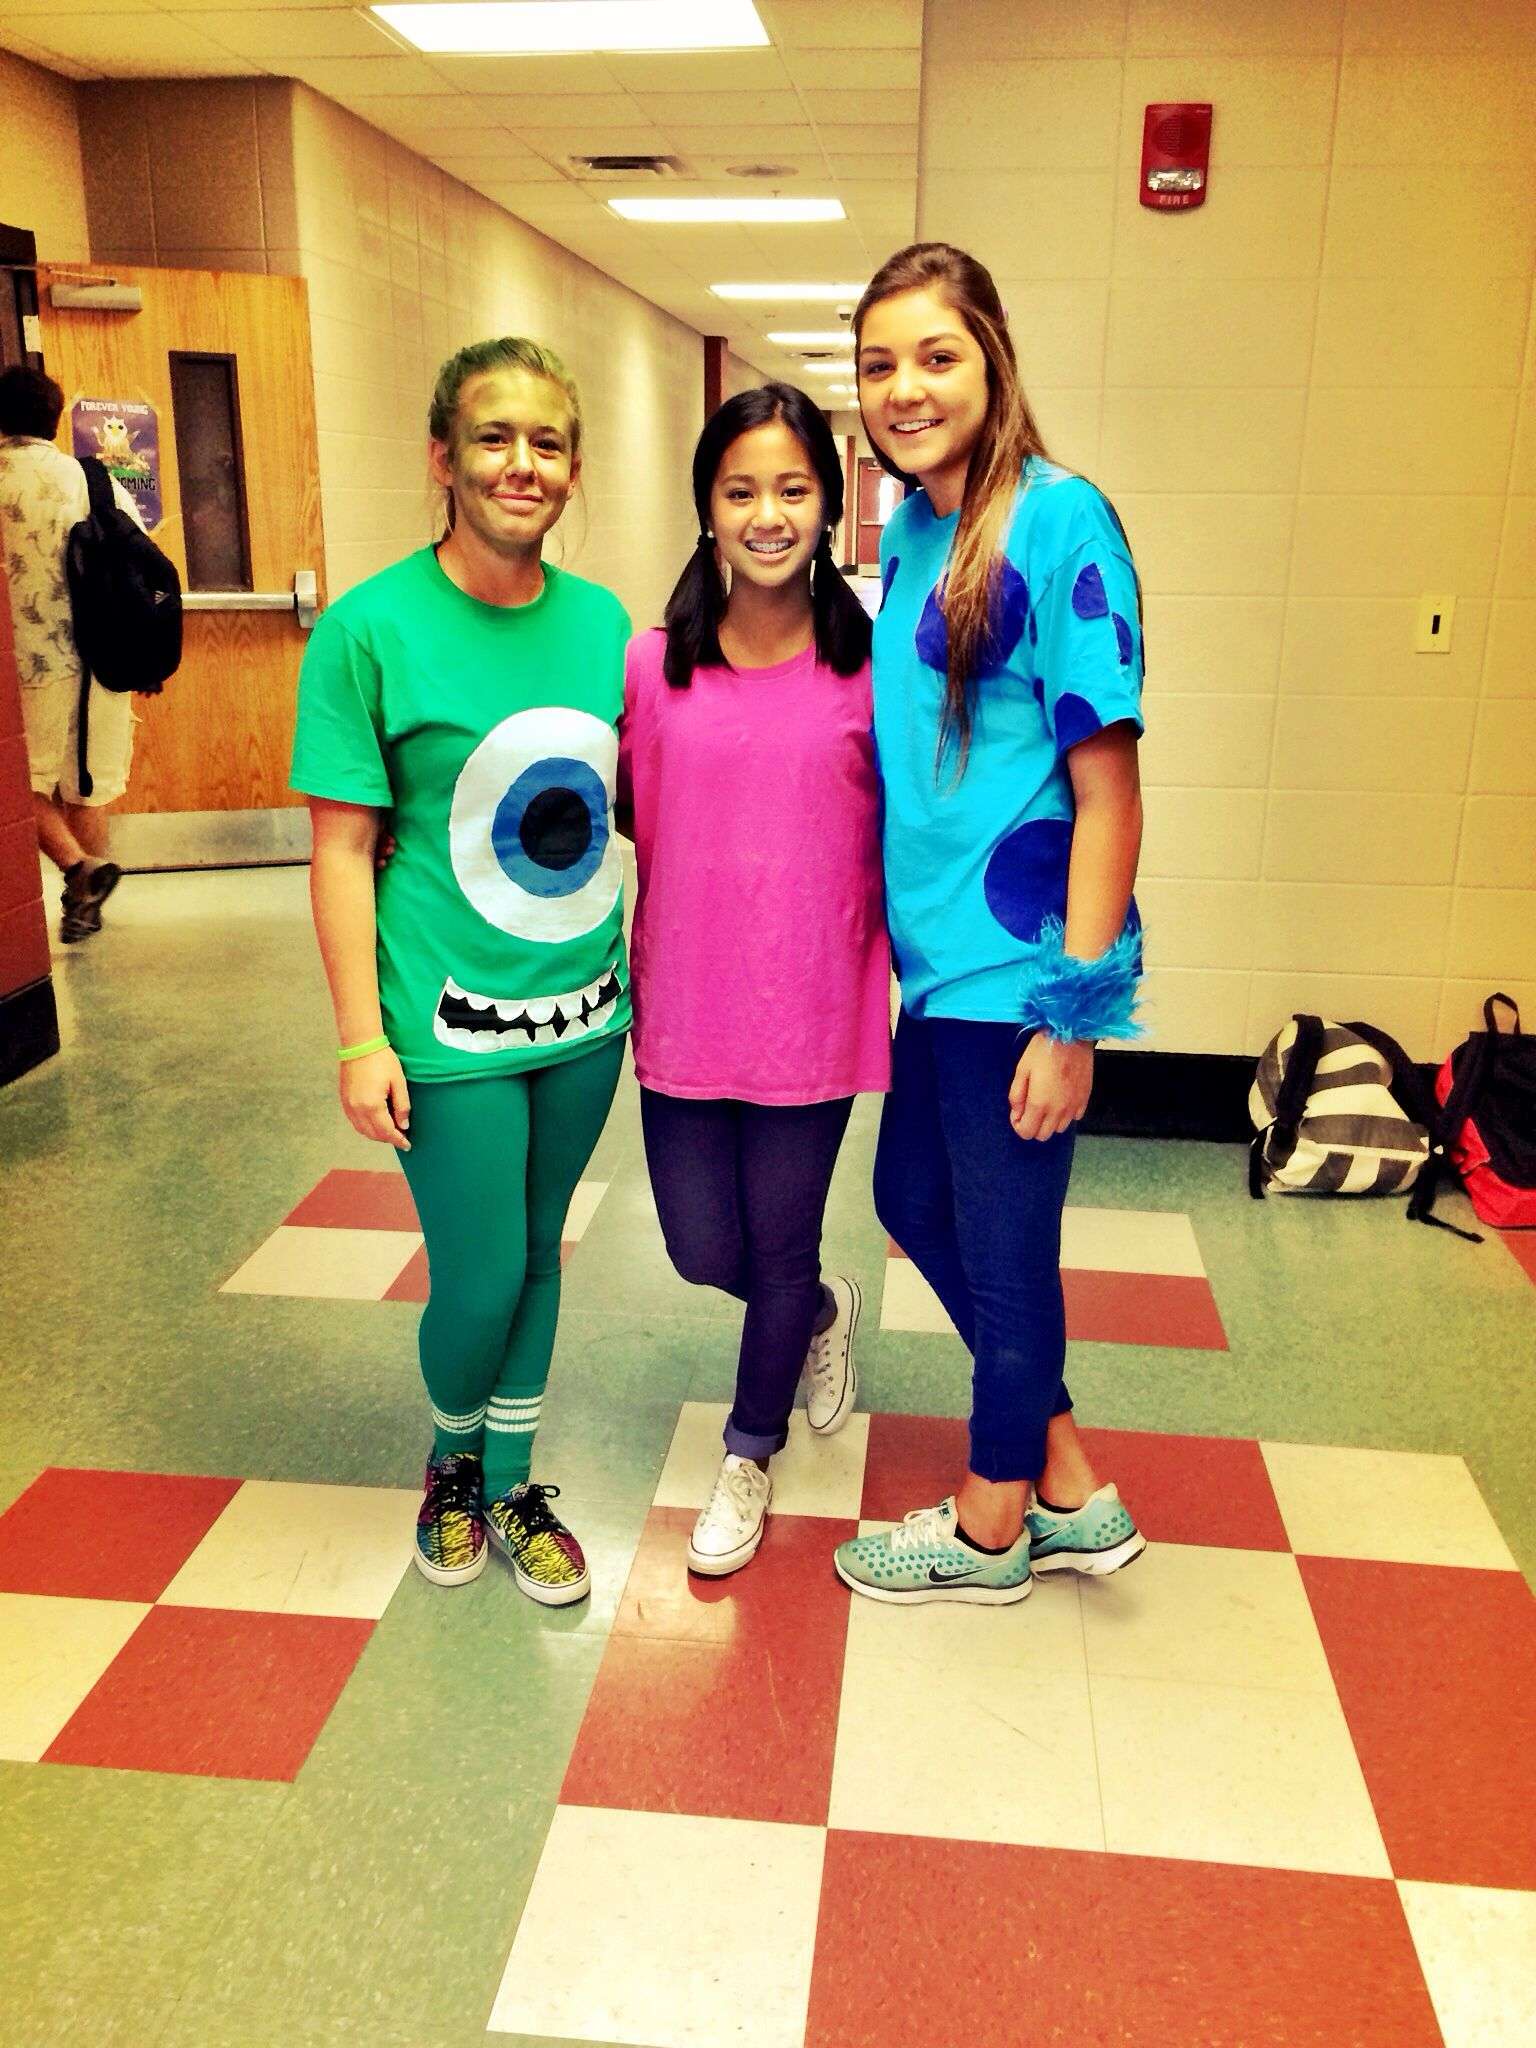 homecoming day 3 : dynamic duo. boo, sully, and mike